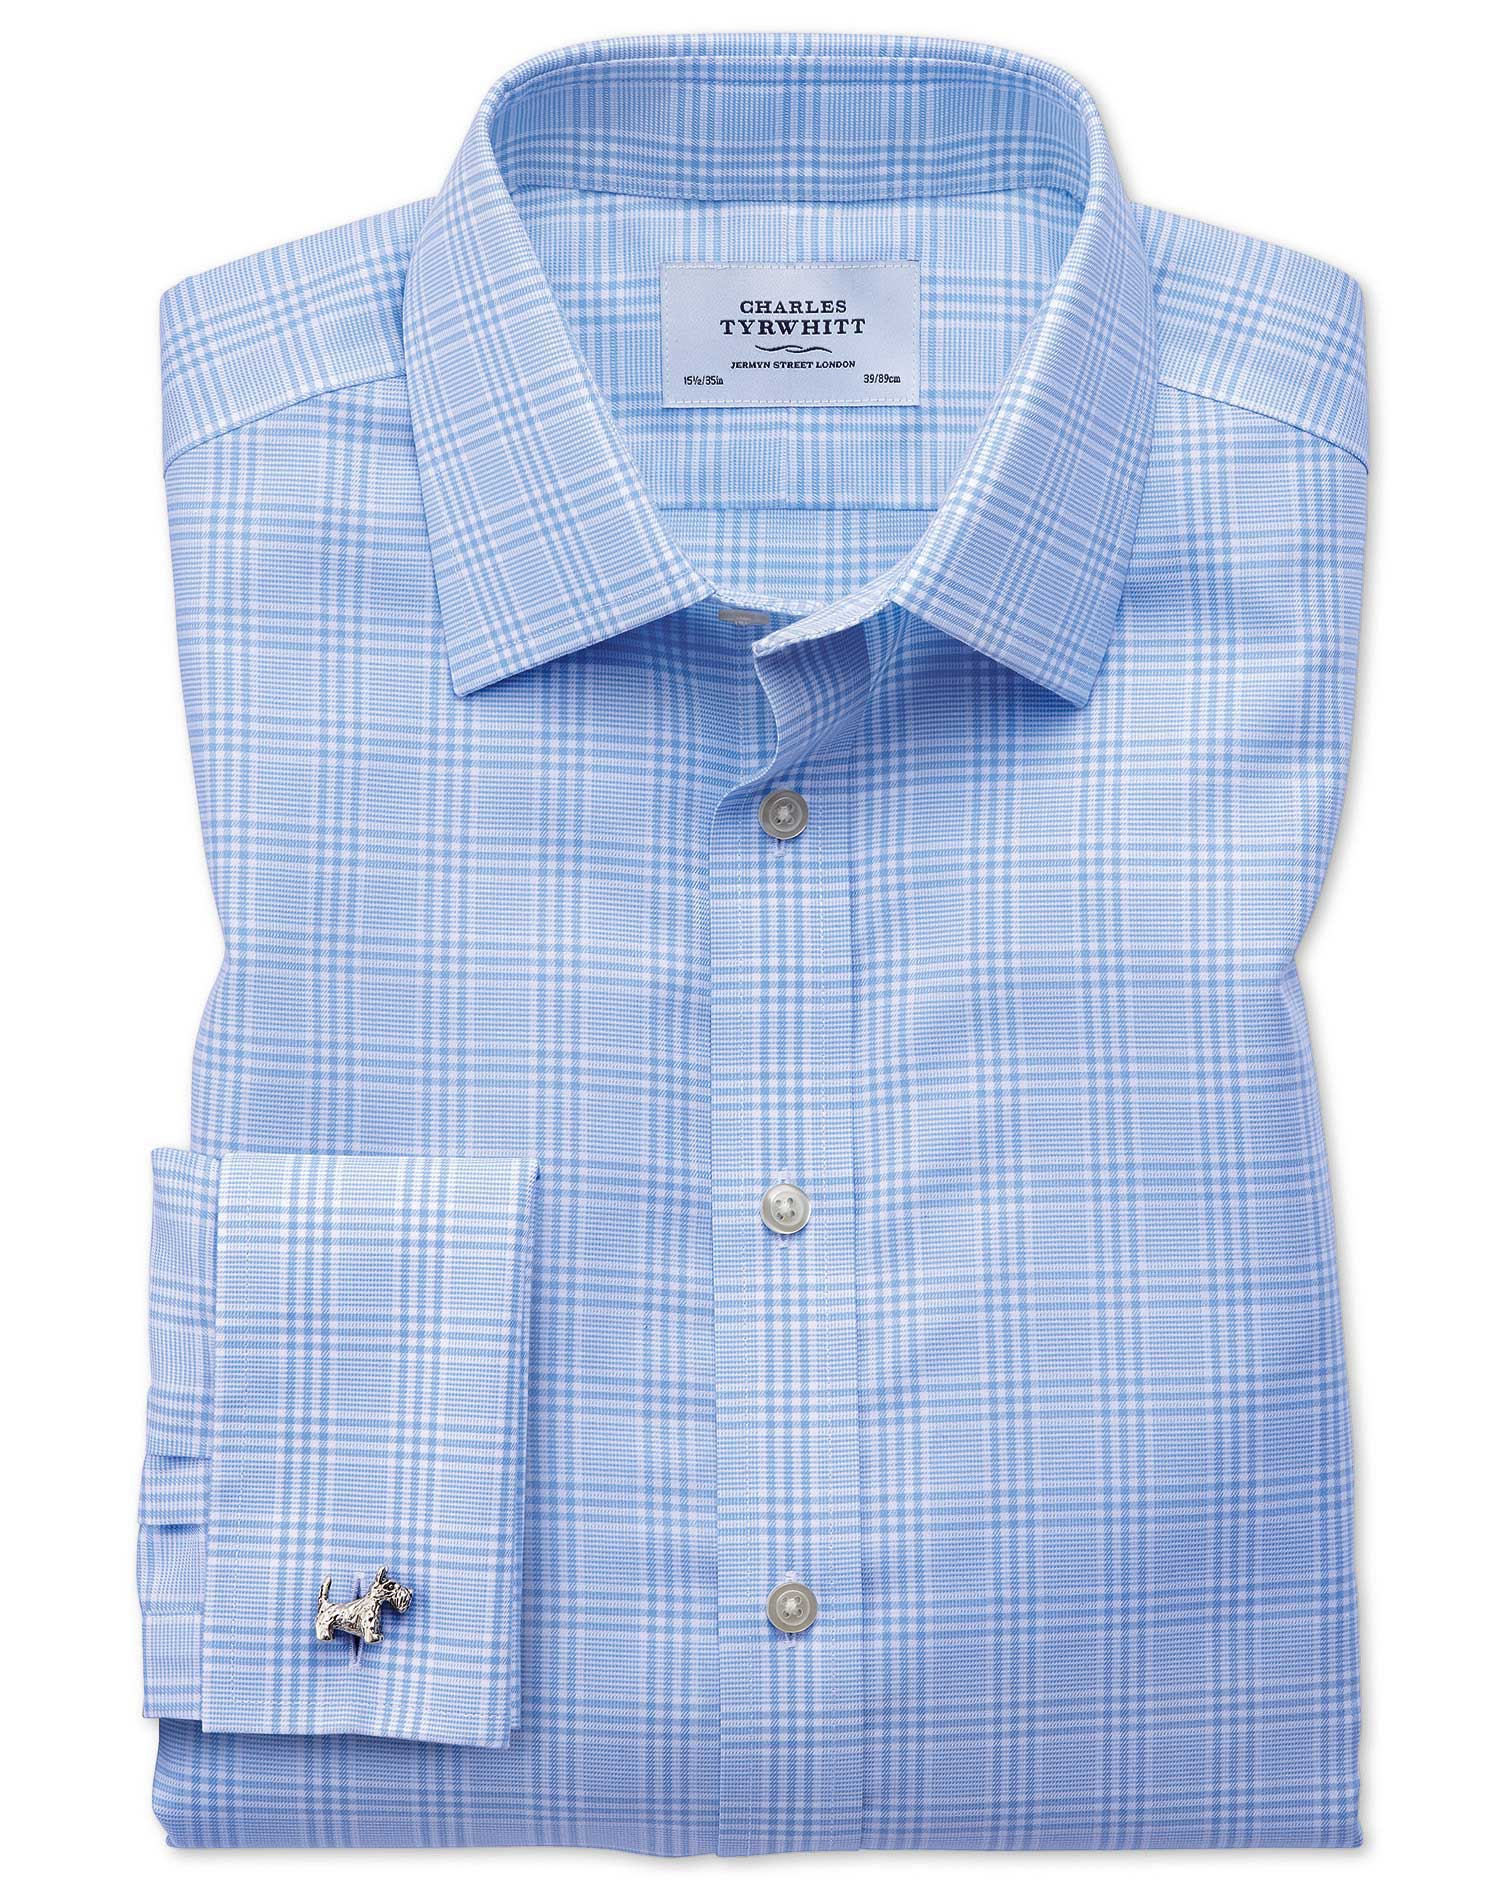 Slim Fit Non-Iron Prince Of Wales Sky Blue Cotton Formal Shirt Double Cuff Size 17/35 by Charles Tyr